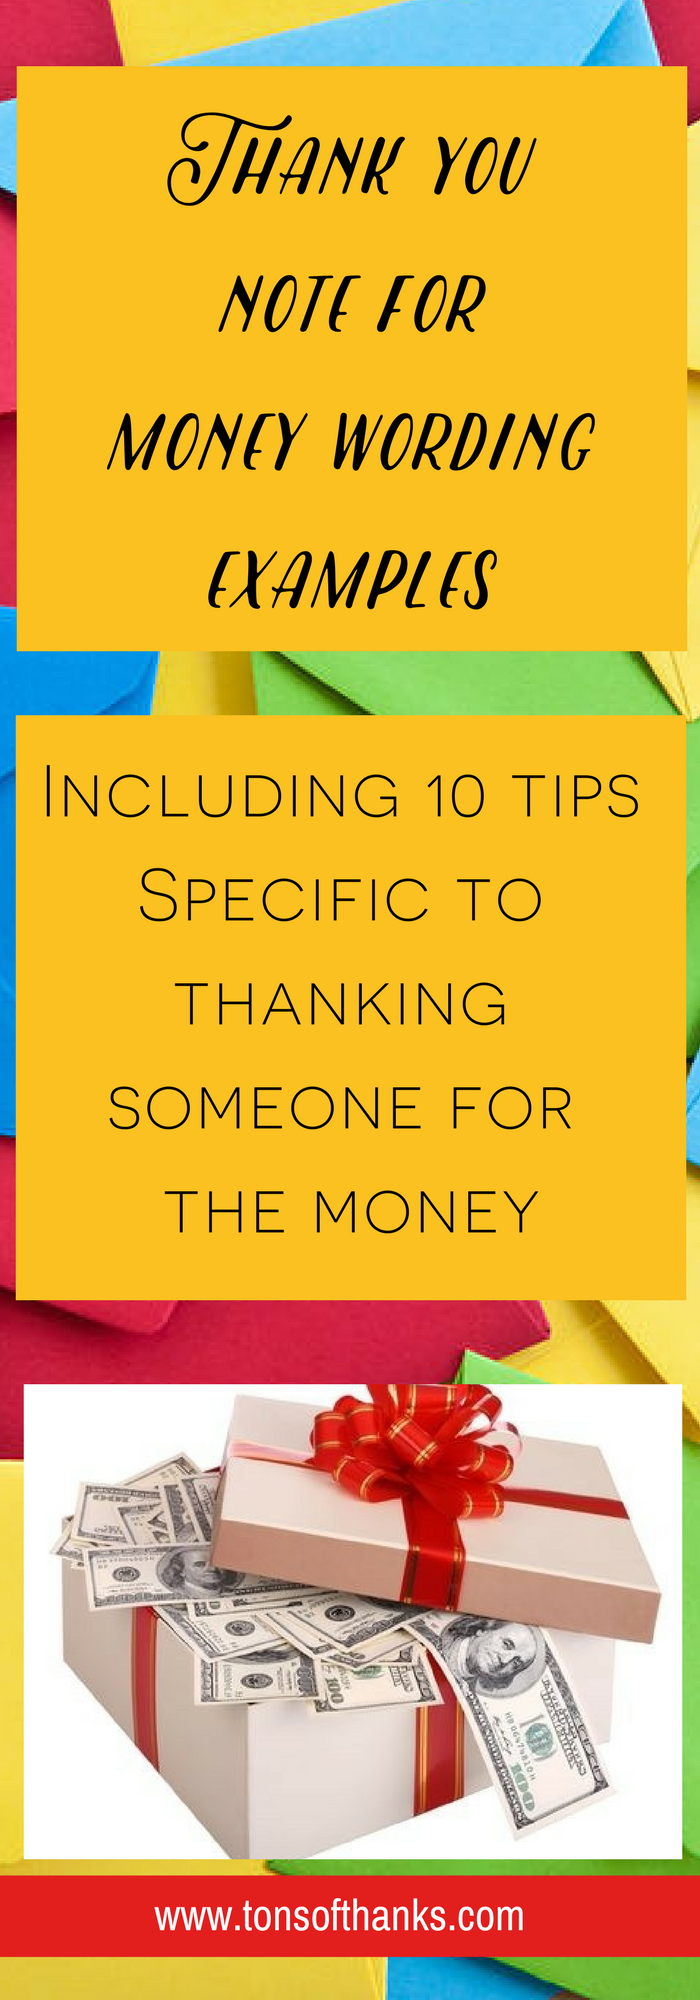 how to write a thank you note for money with examples and